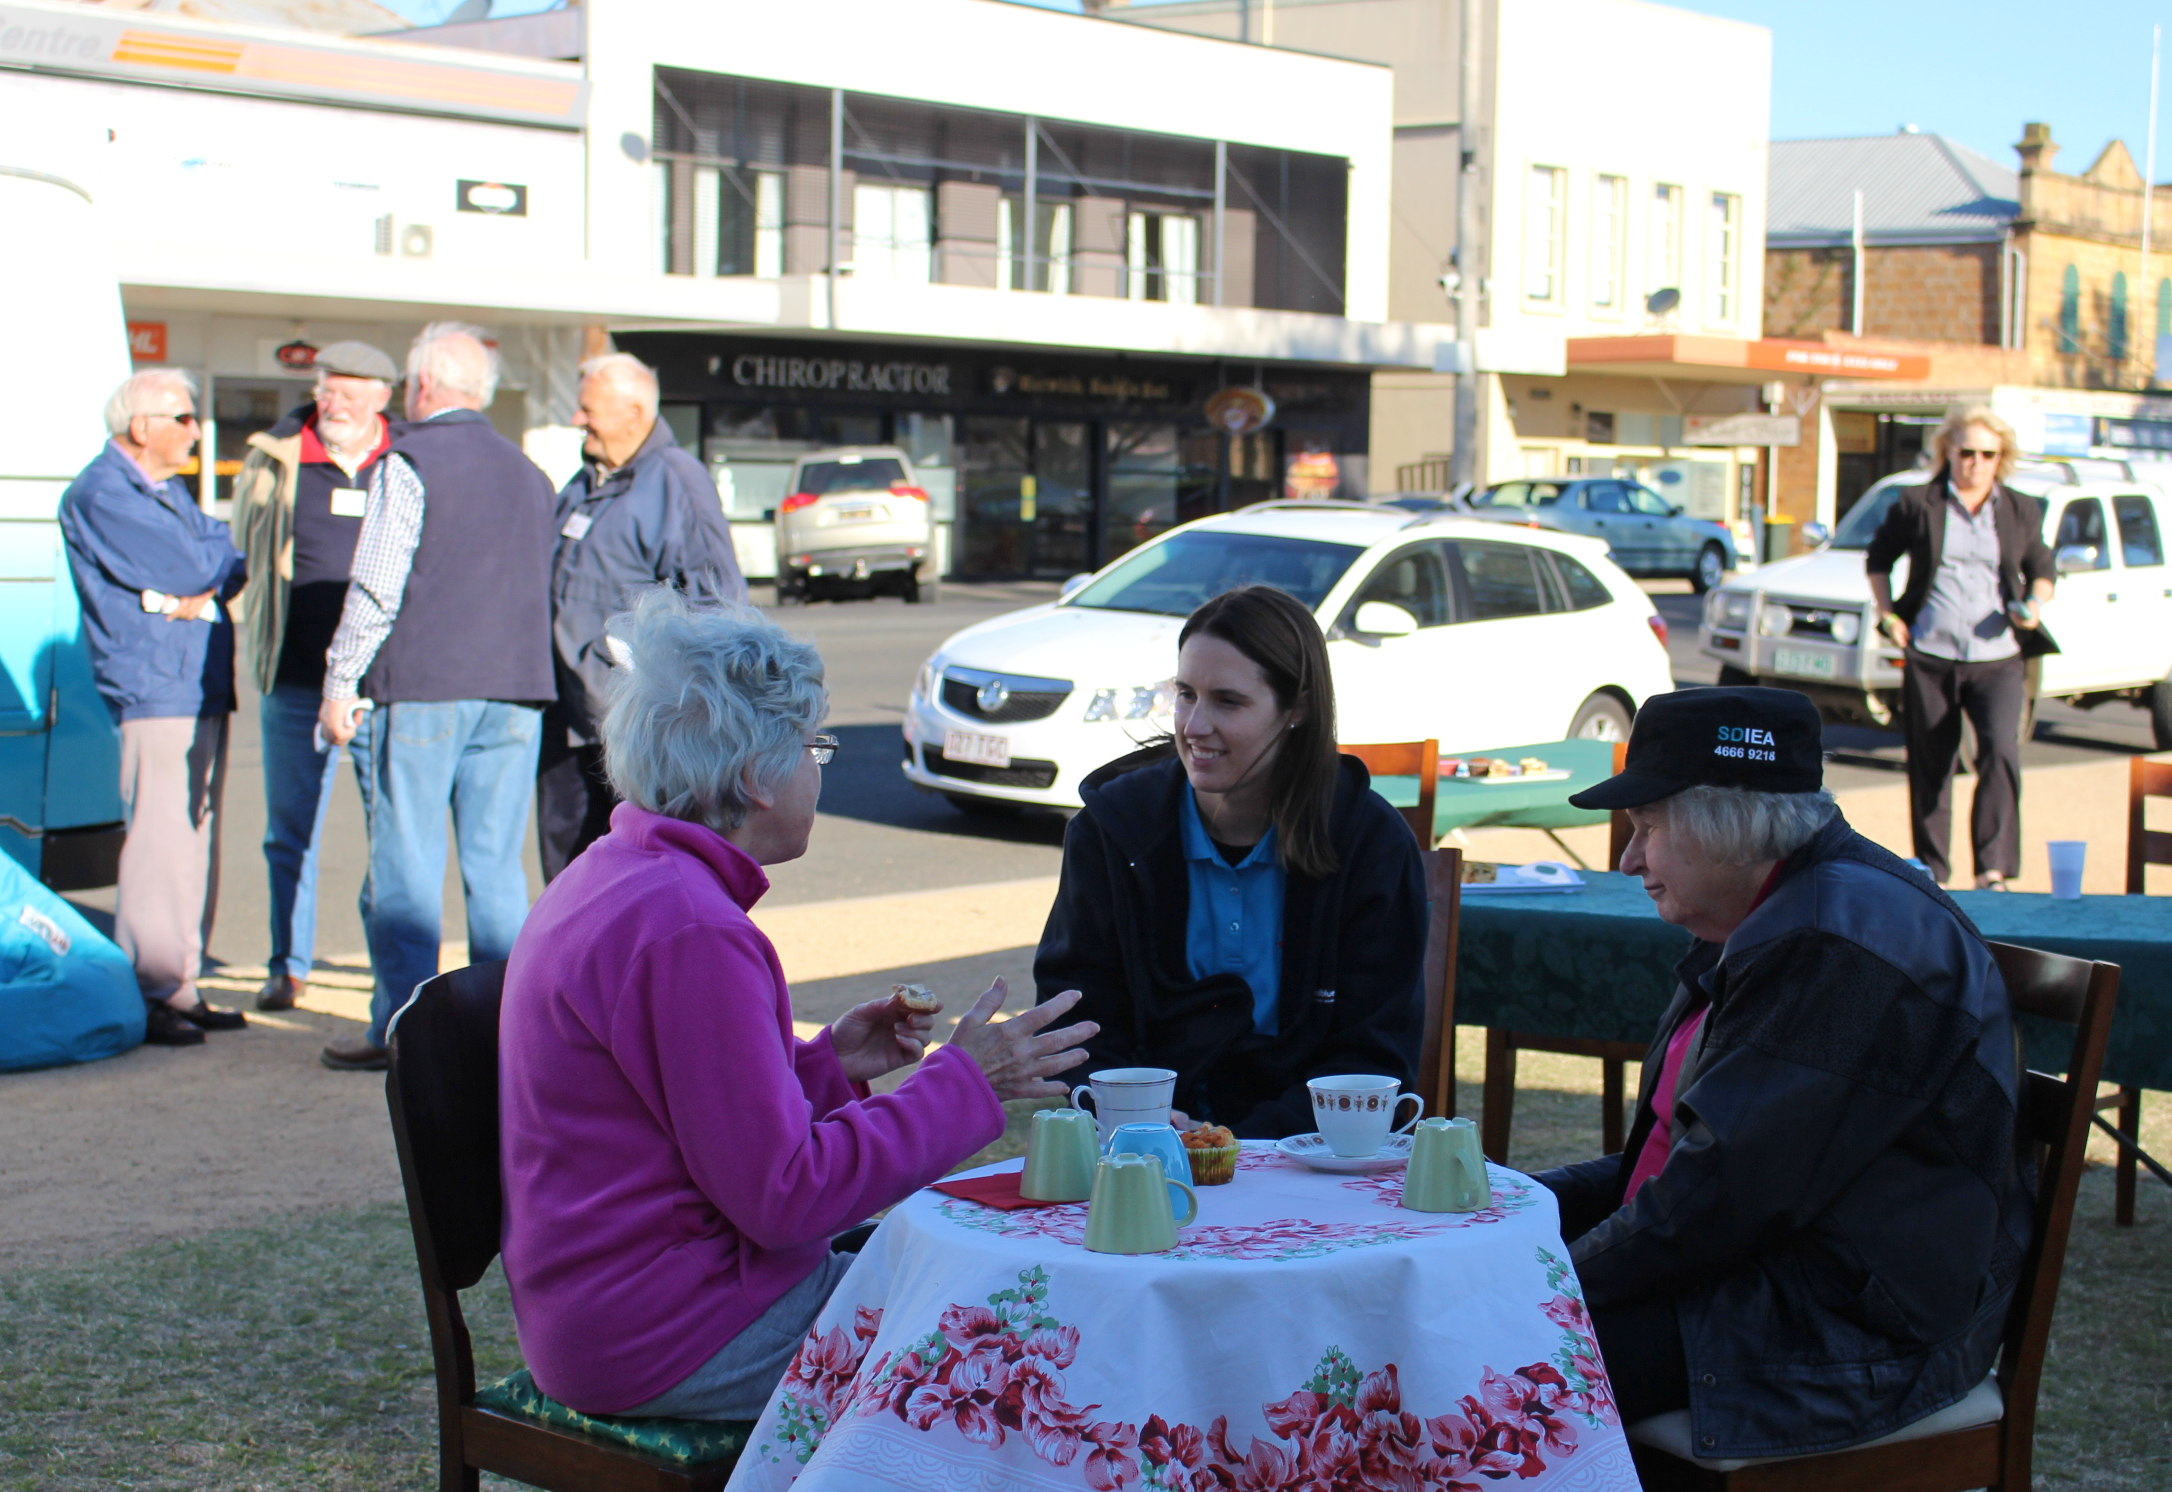 Chatting to locals in Warwick.